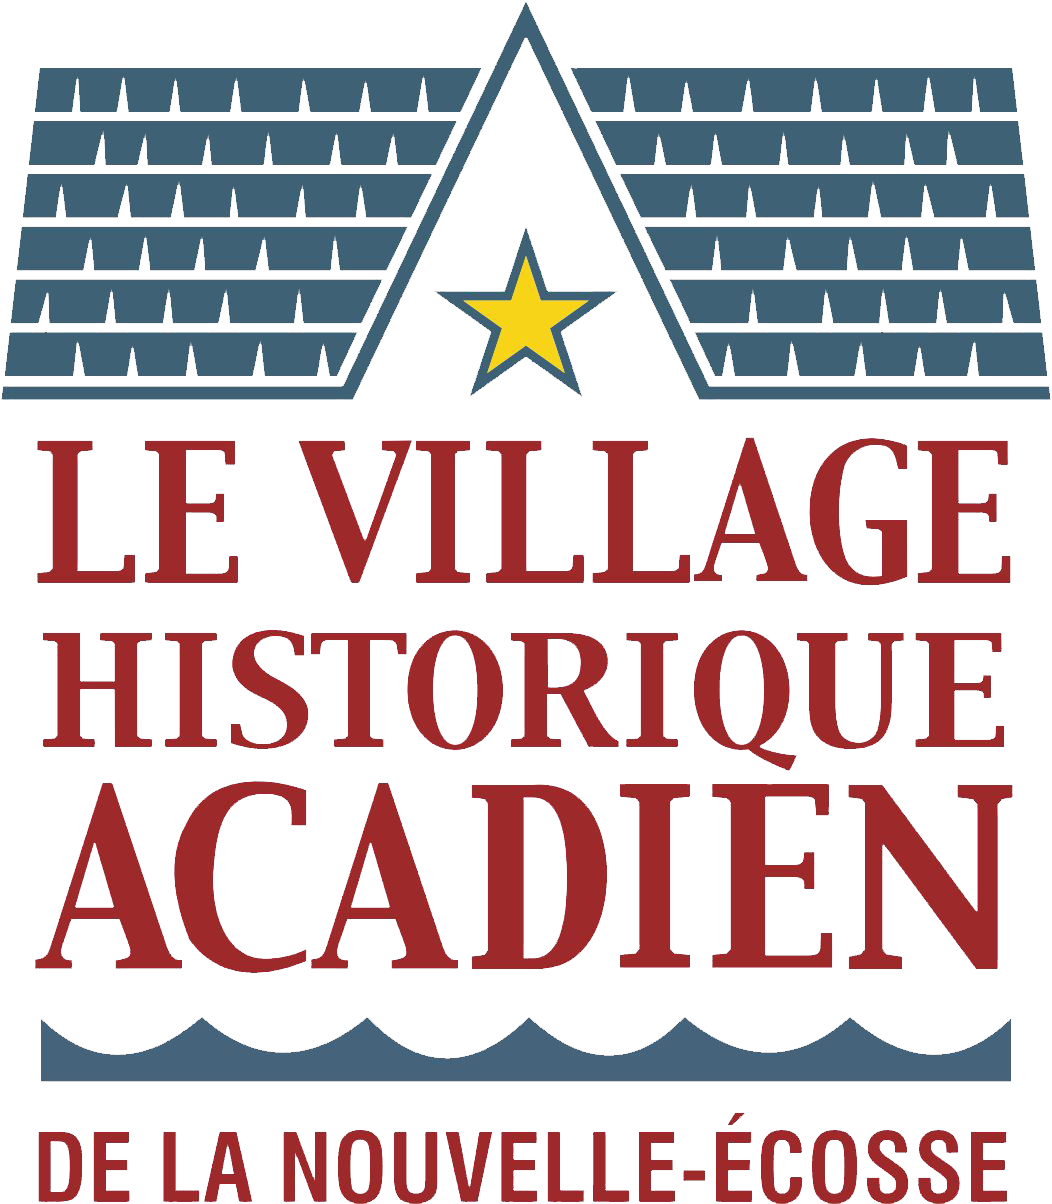 The Historic Acadian Village of Nova Scotia